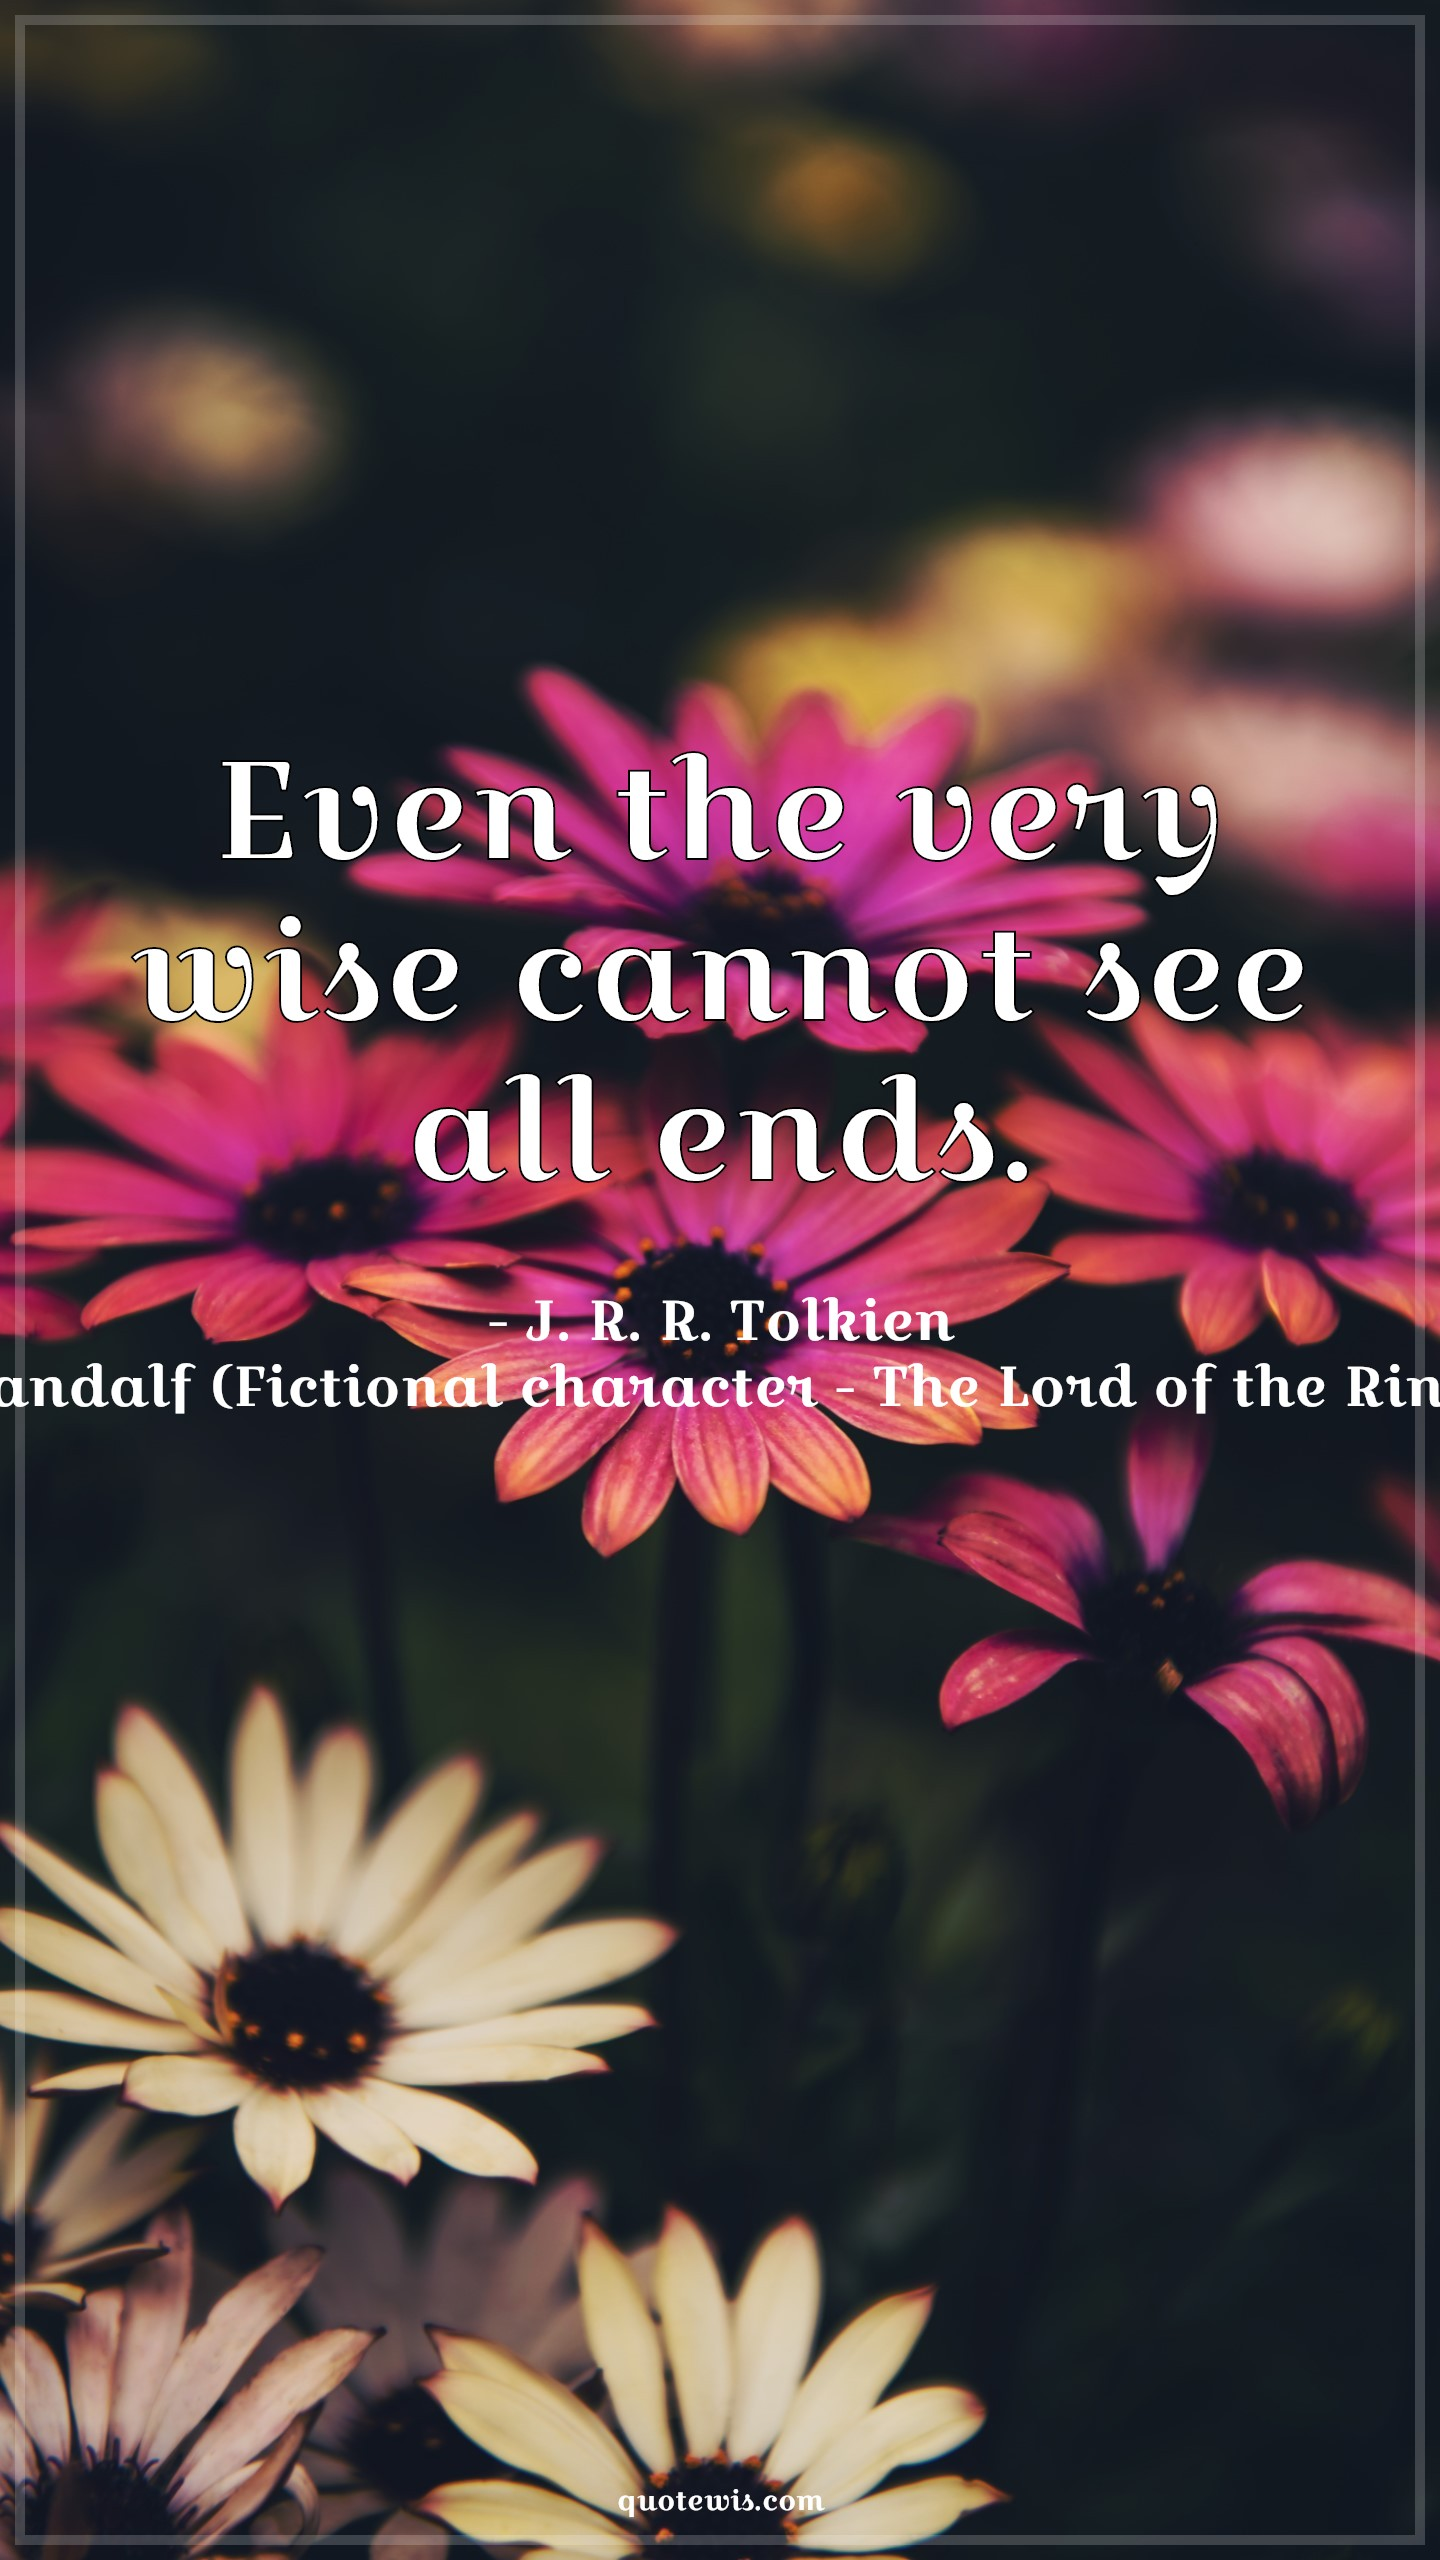 Even the very wise cannot see all ends.